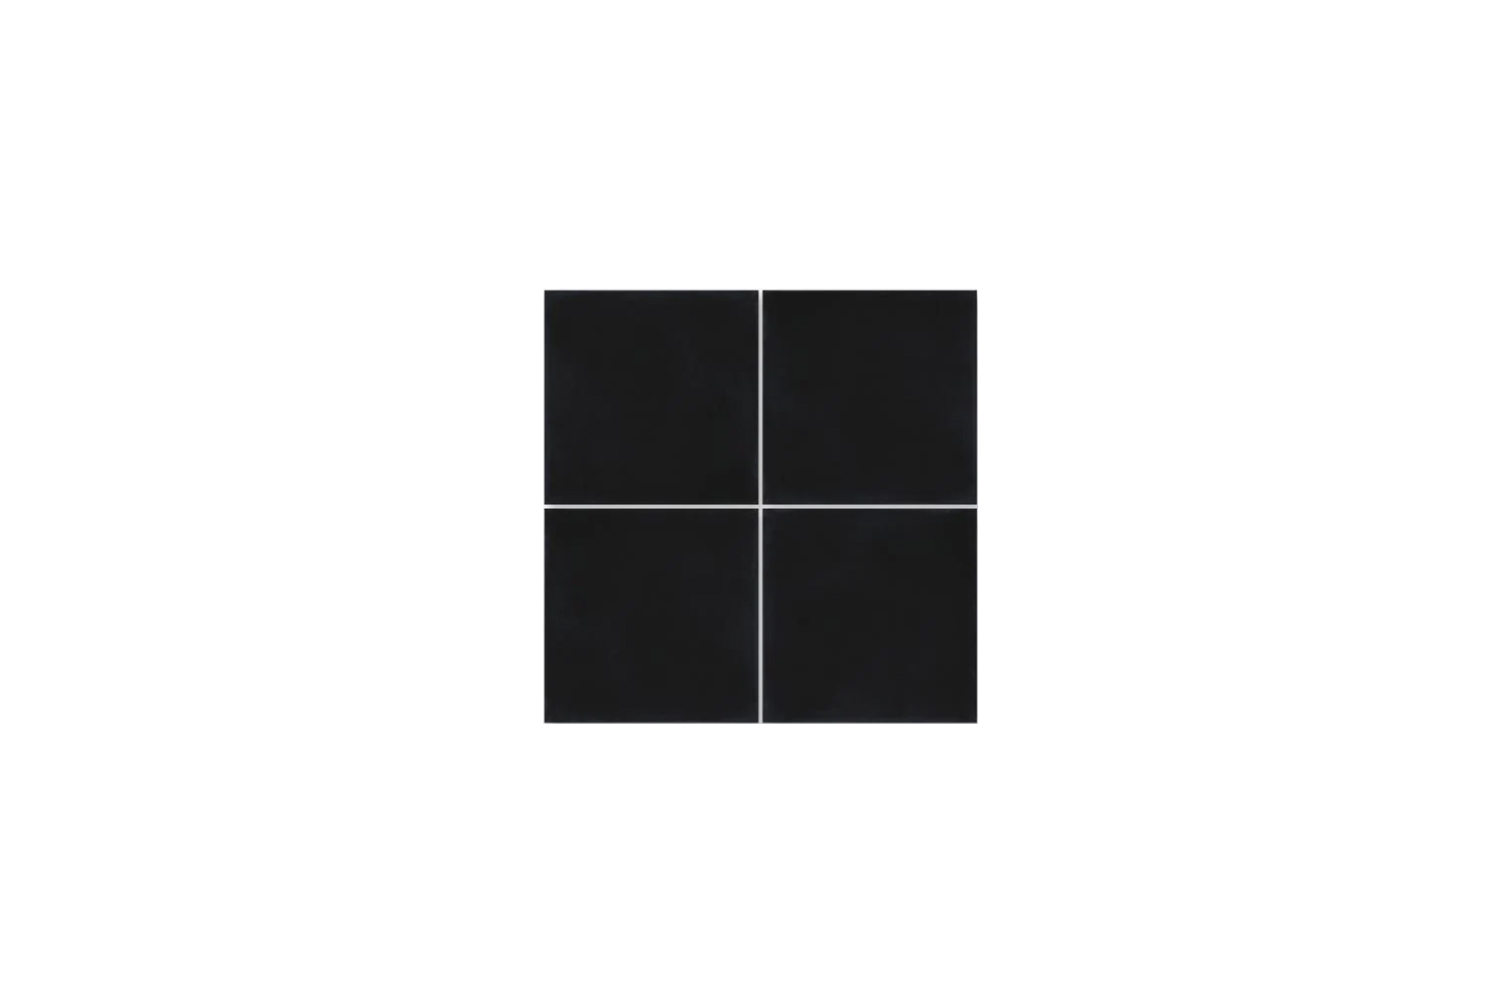 the solid black tile (sb \2000) is \$4.80 per piece from villa lagoon. 14